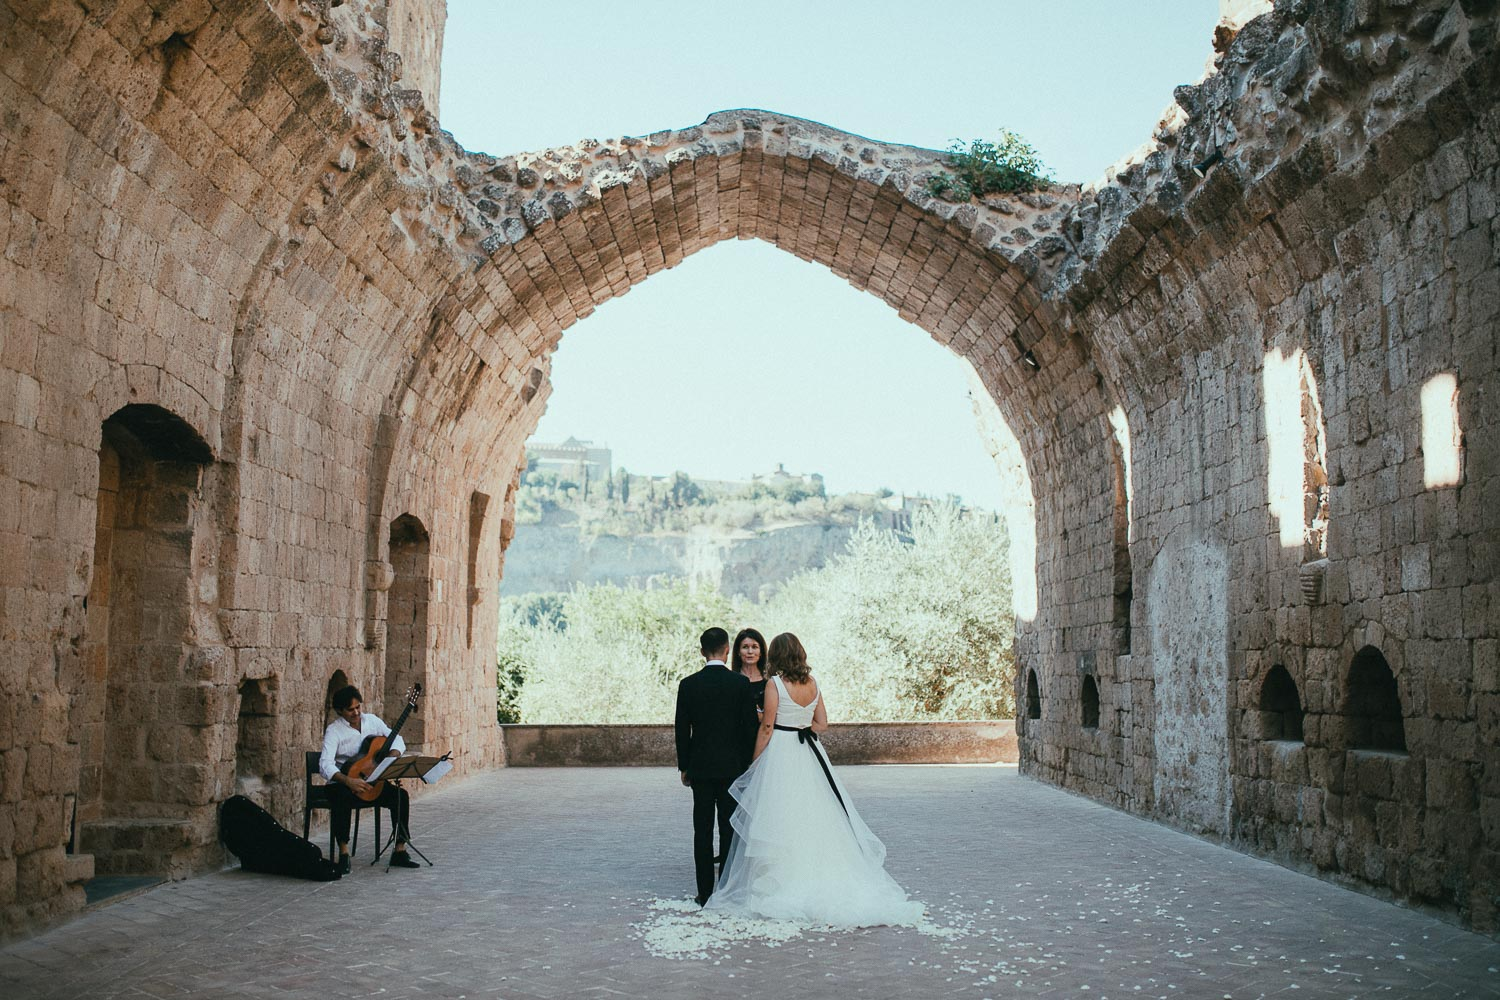 michelle + lucas / badia di orvieto, italy  ___  elopement  photo